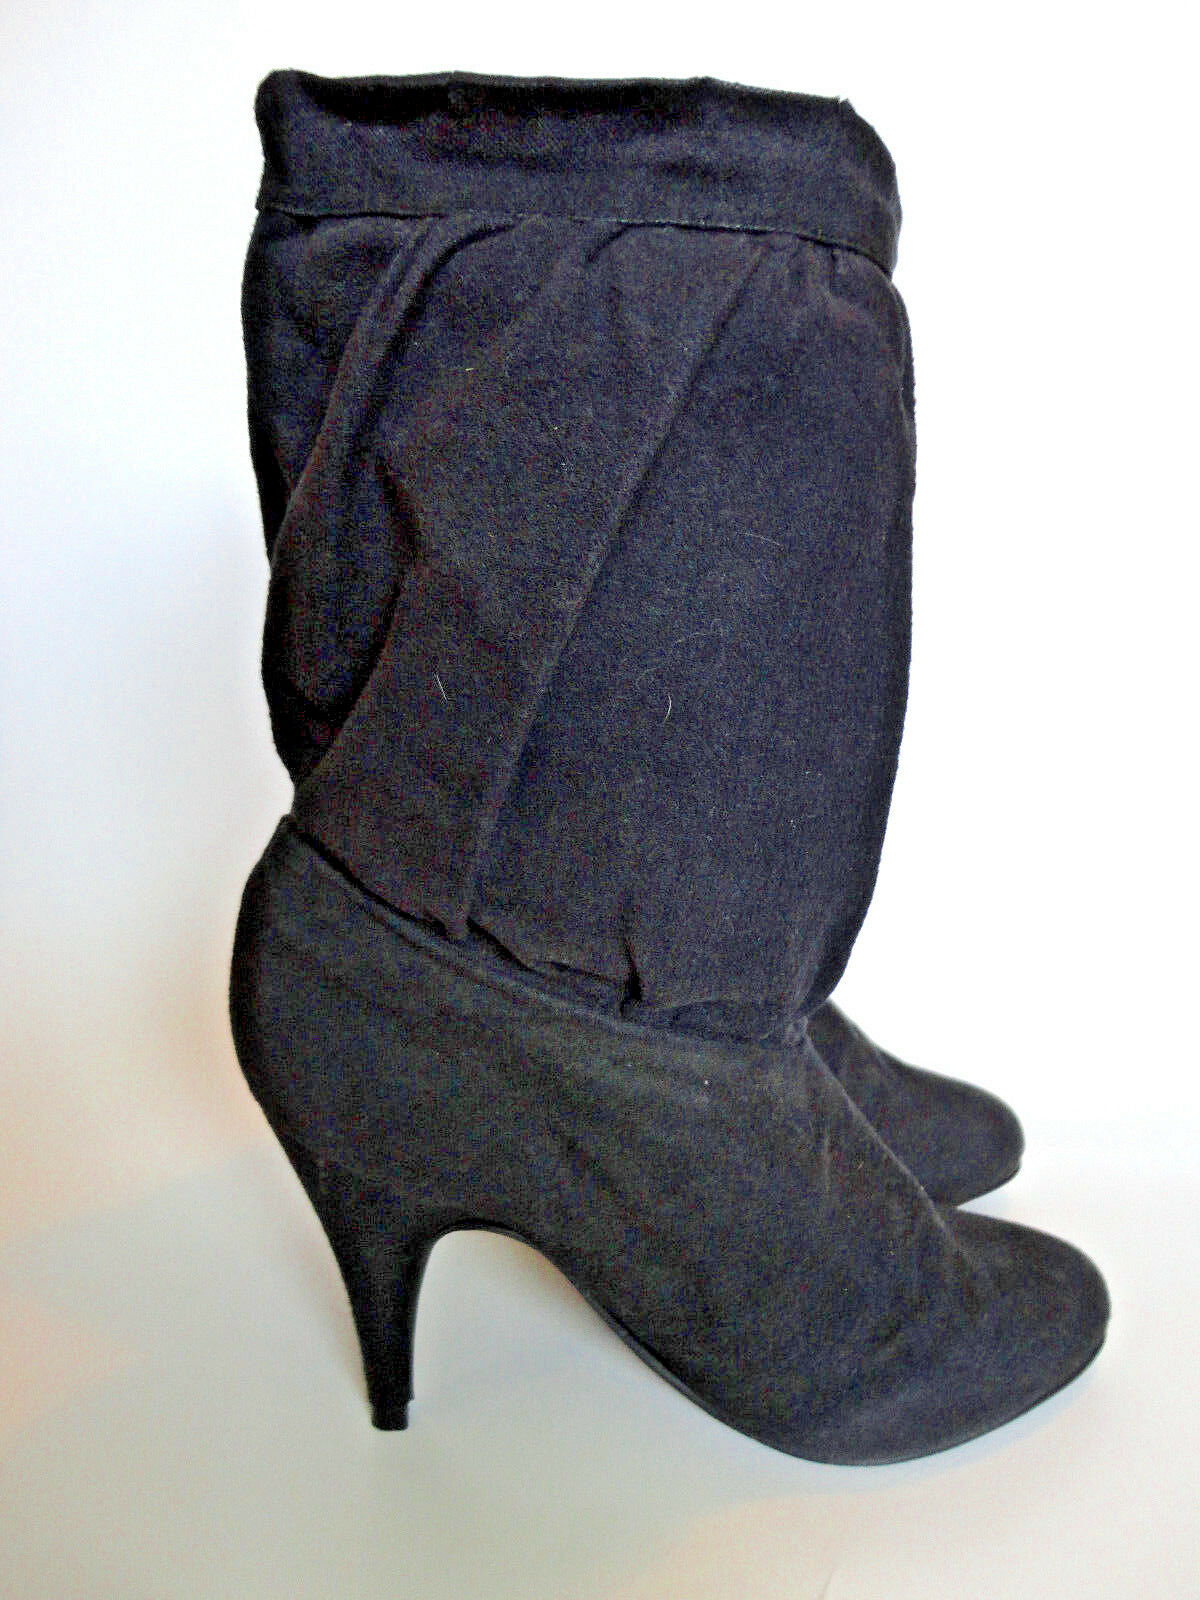 LADY McQUIRE {Size 7.5} Women's Black High Heel Slouch Fabric Boots VERY NICE!